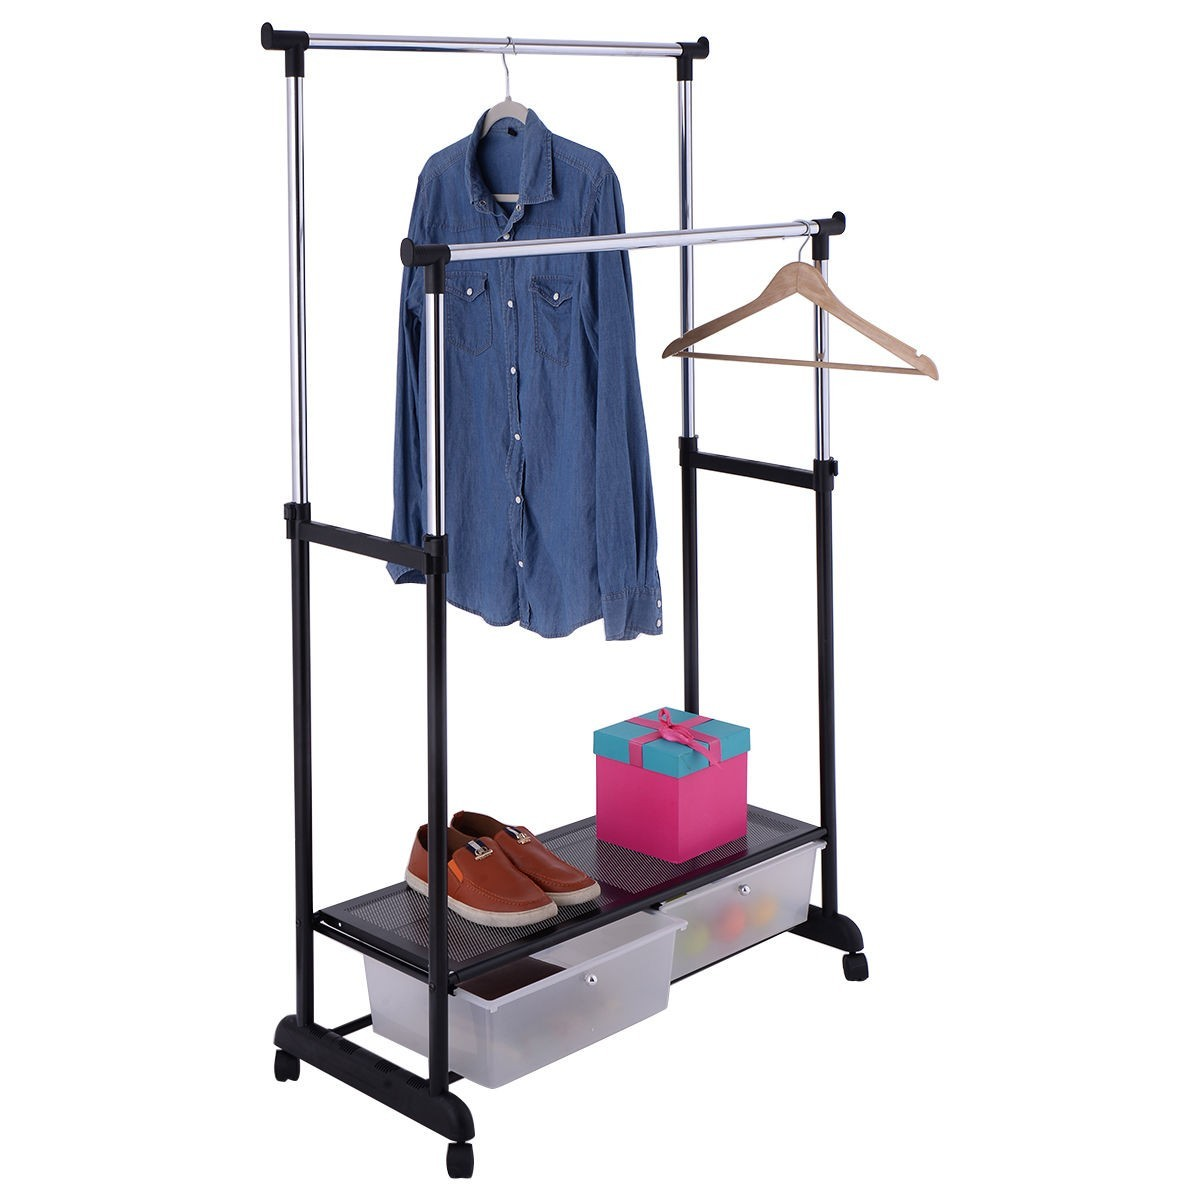 Double Adjustable Clothes Hanger Garment Rack